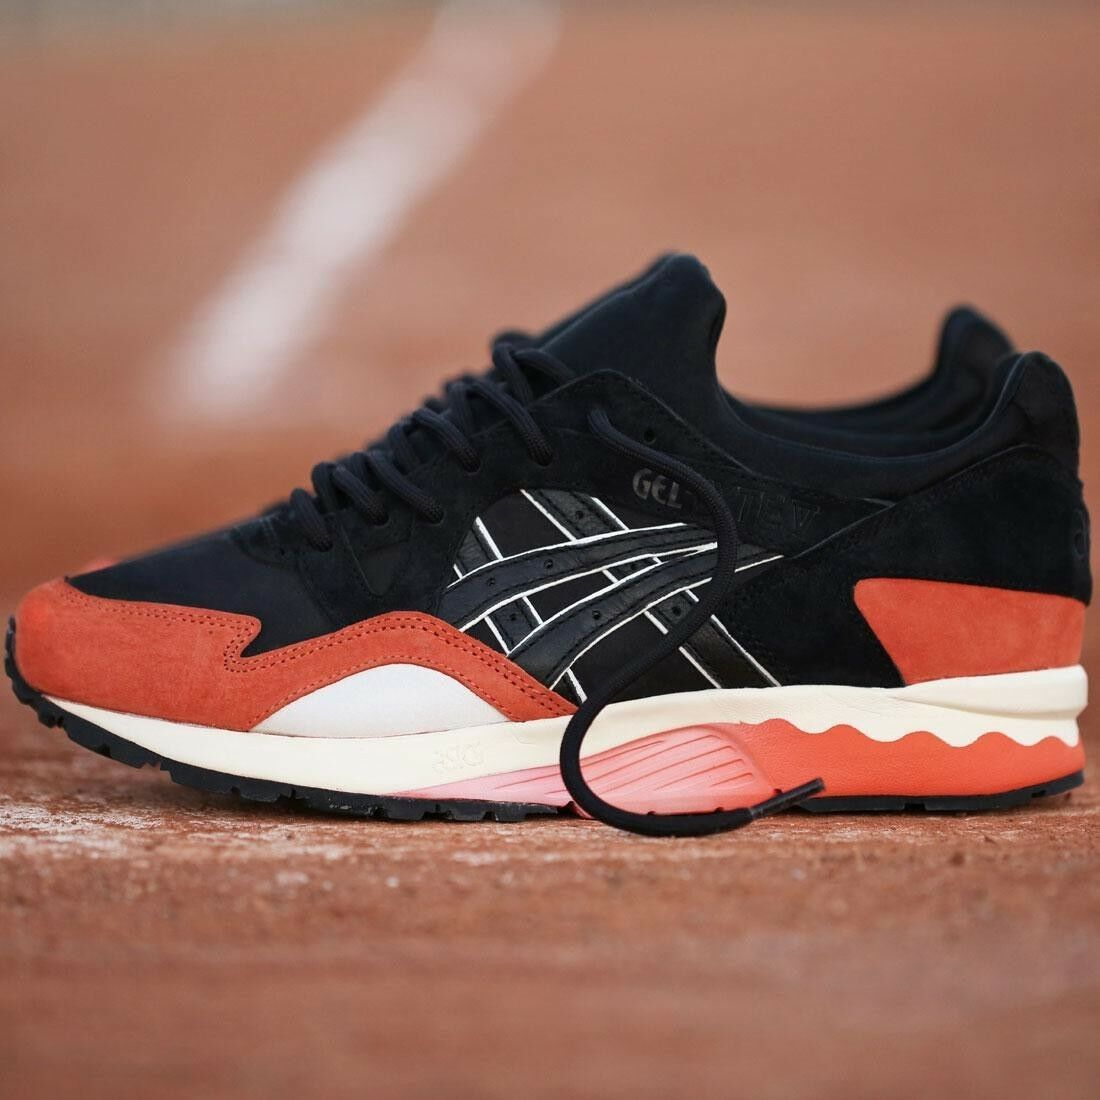 US size 8.5 BAIT x Asics Gel Lyte V Misfits Bay Pack SF Giant Orange